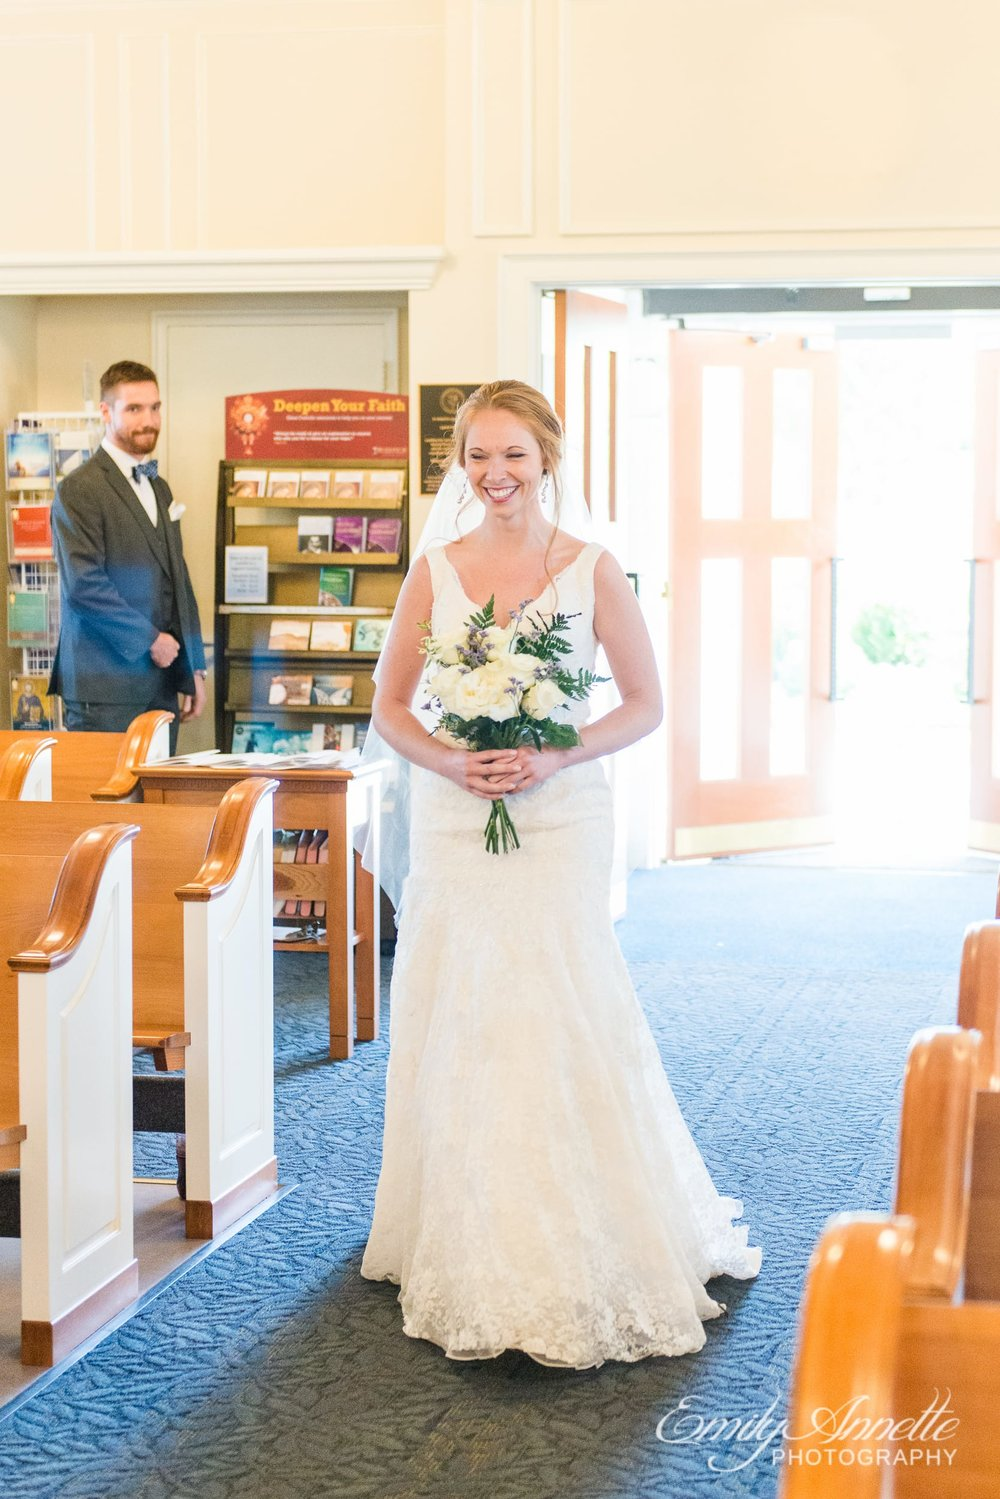 The bride enters for bridal procession during a Catholic wedding ceremony at Marymount University's Sacred Heart of Mary Chapel in Arlington, Virginia